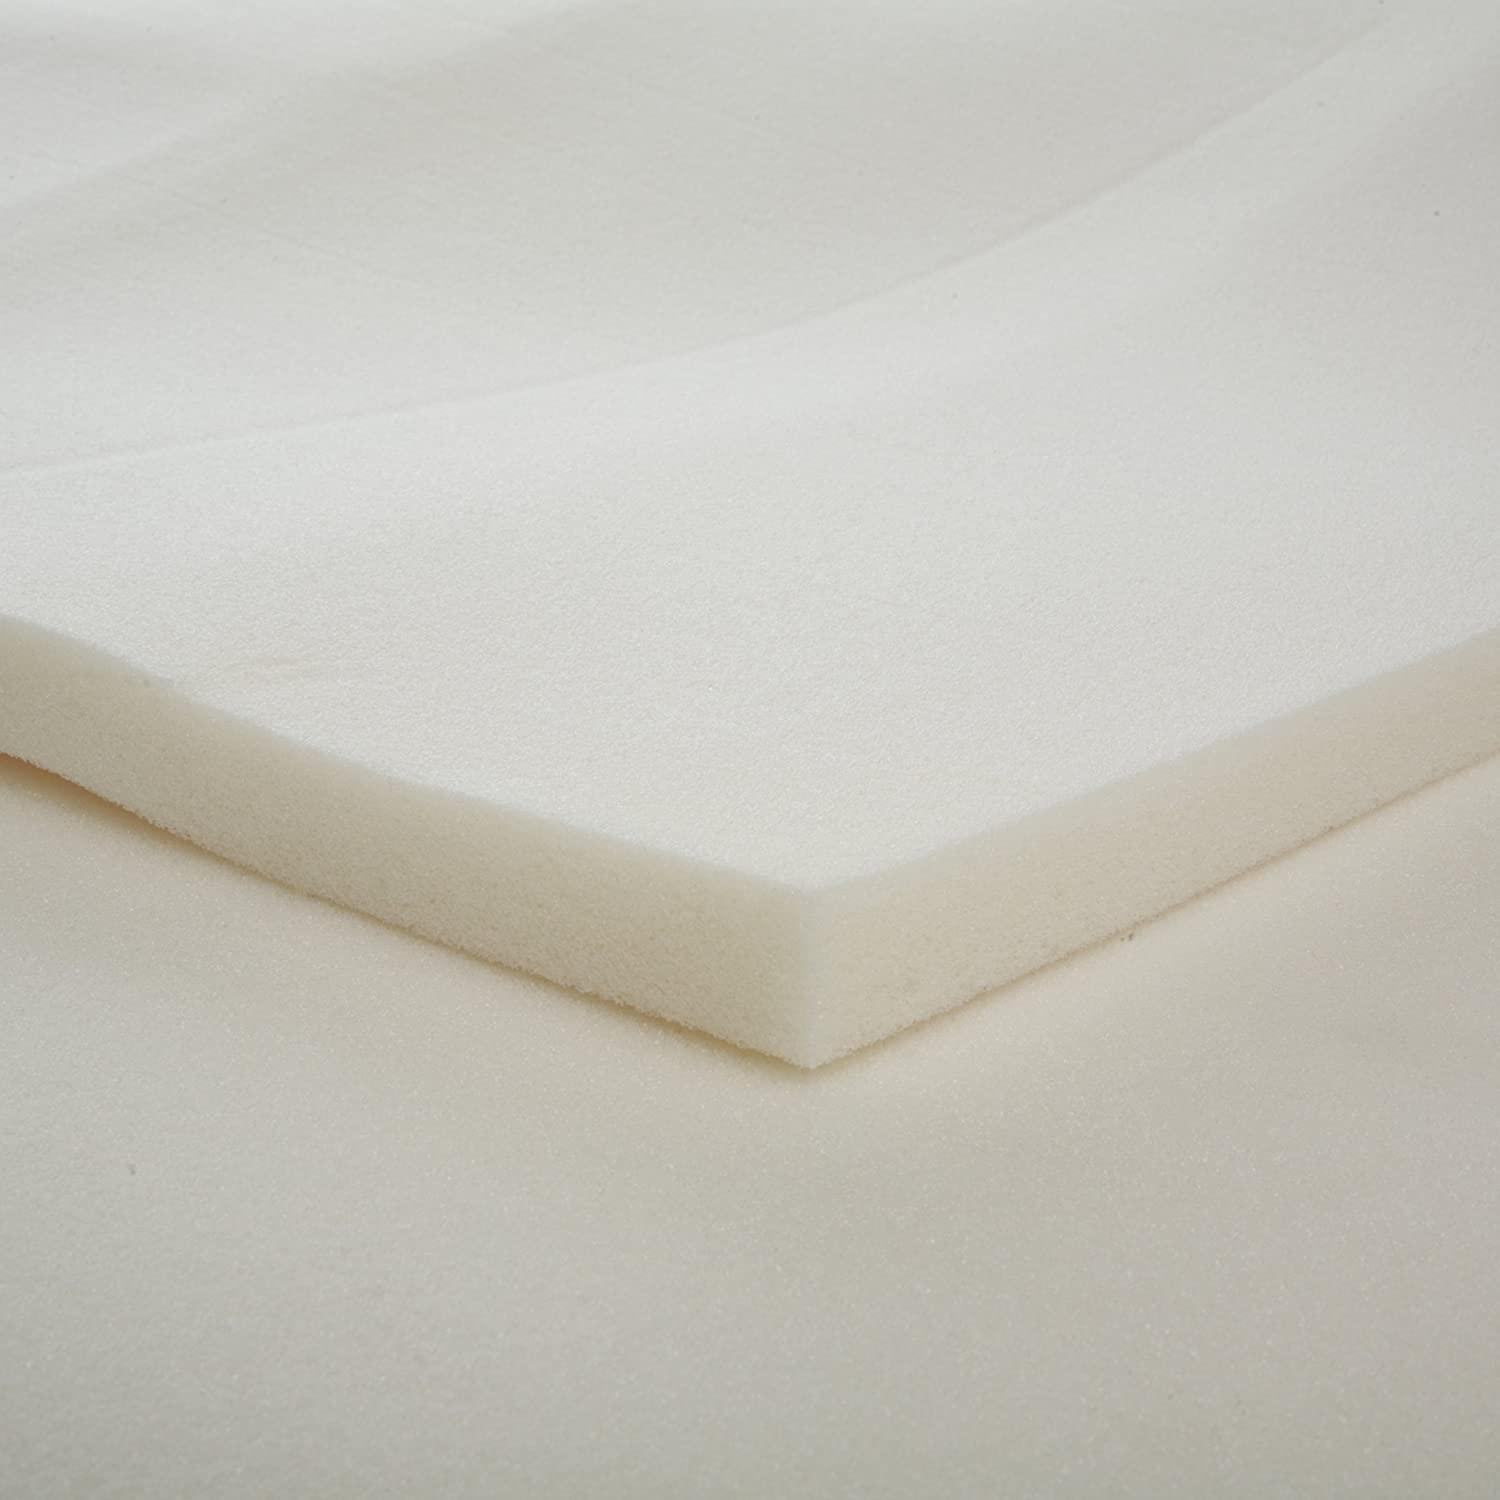 1 1 2 inch memory foam mattress topper Amazon.com: 1 Inch Slab Memory Foam Mattress Topper, TwinXL: Home  1 1 2 inch memory foam mattress topper